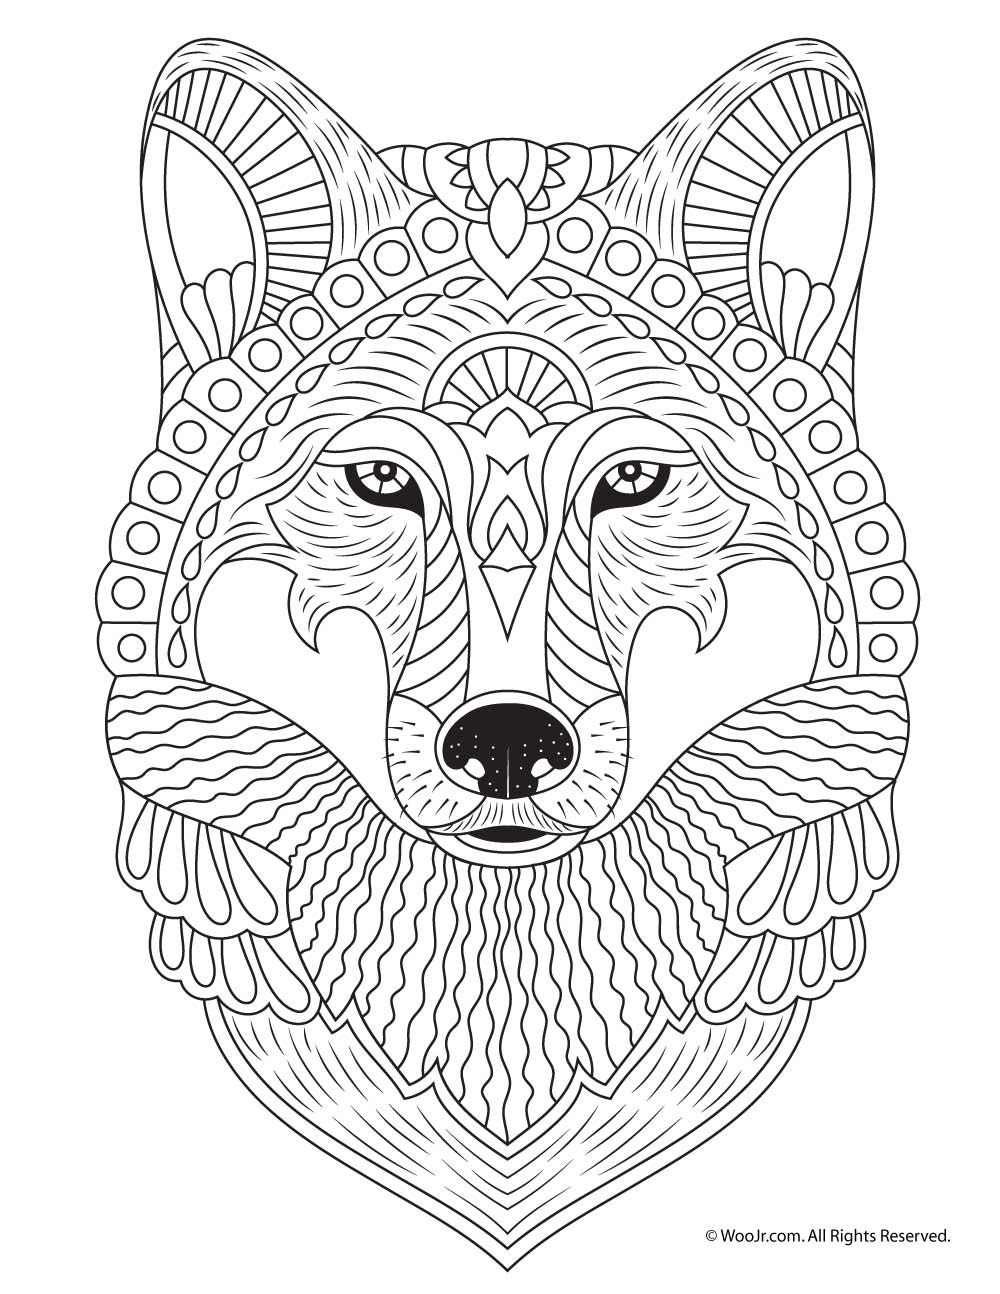 Wolf Adult Coloring Page | Woo! Jr. Kids Activities | printable colouring pages for adults animals